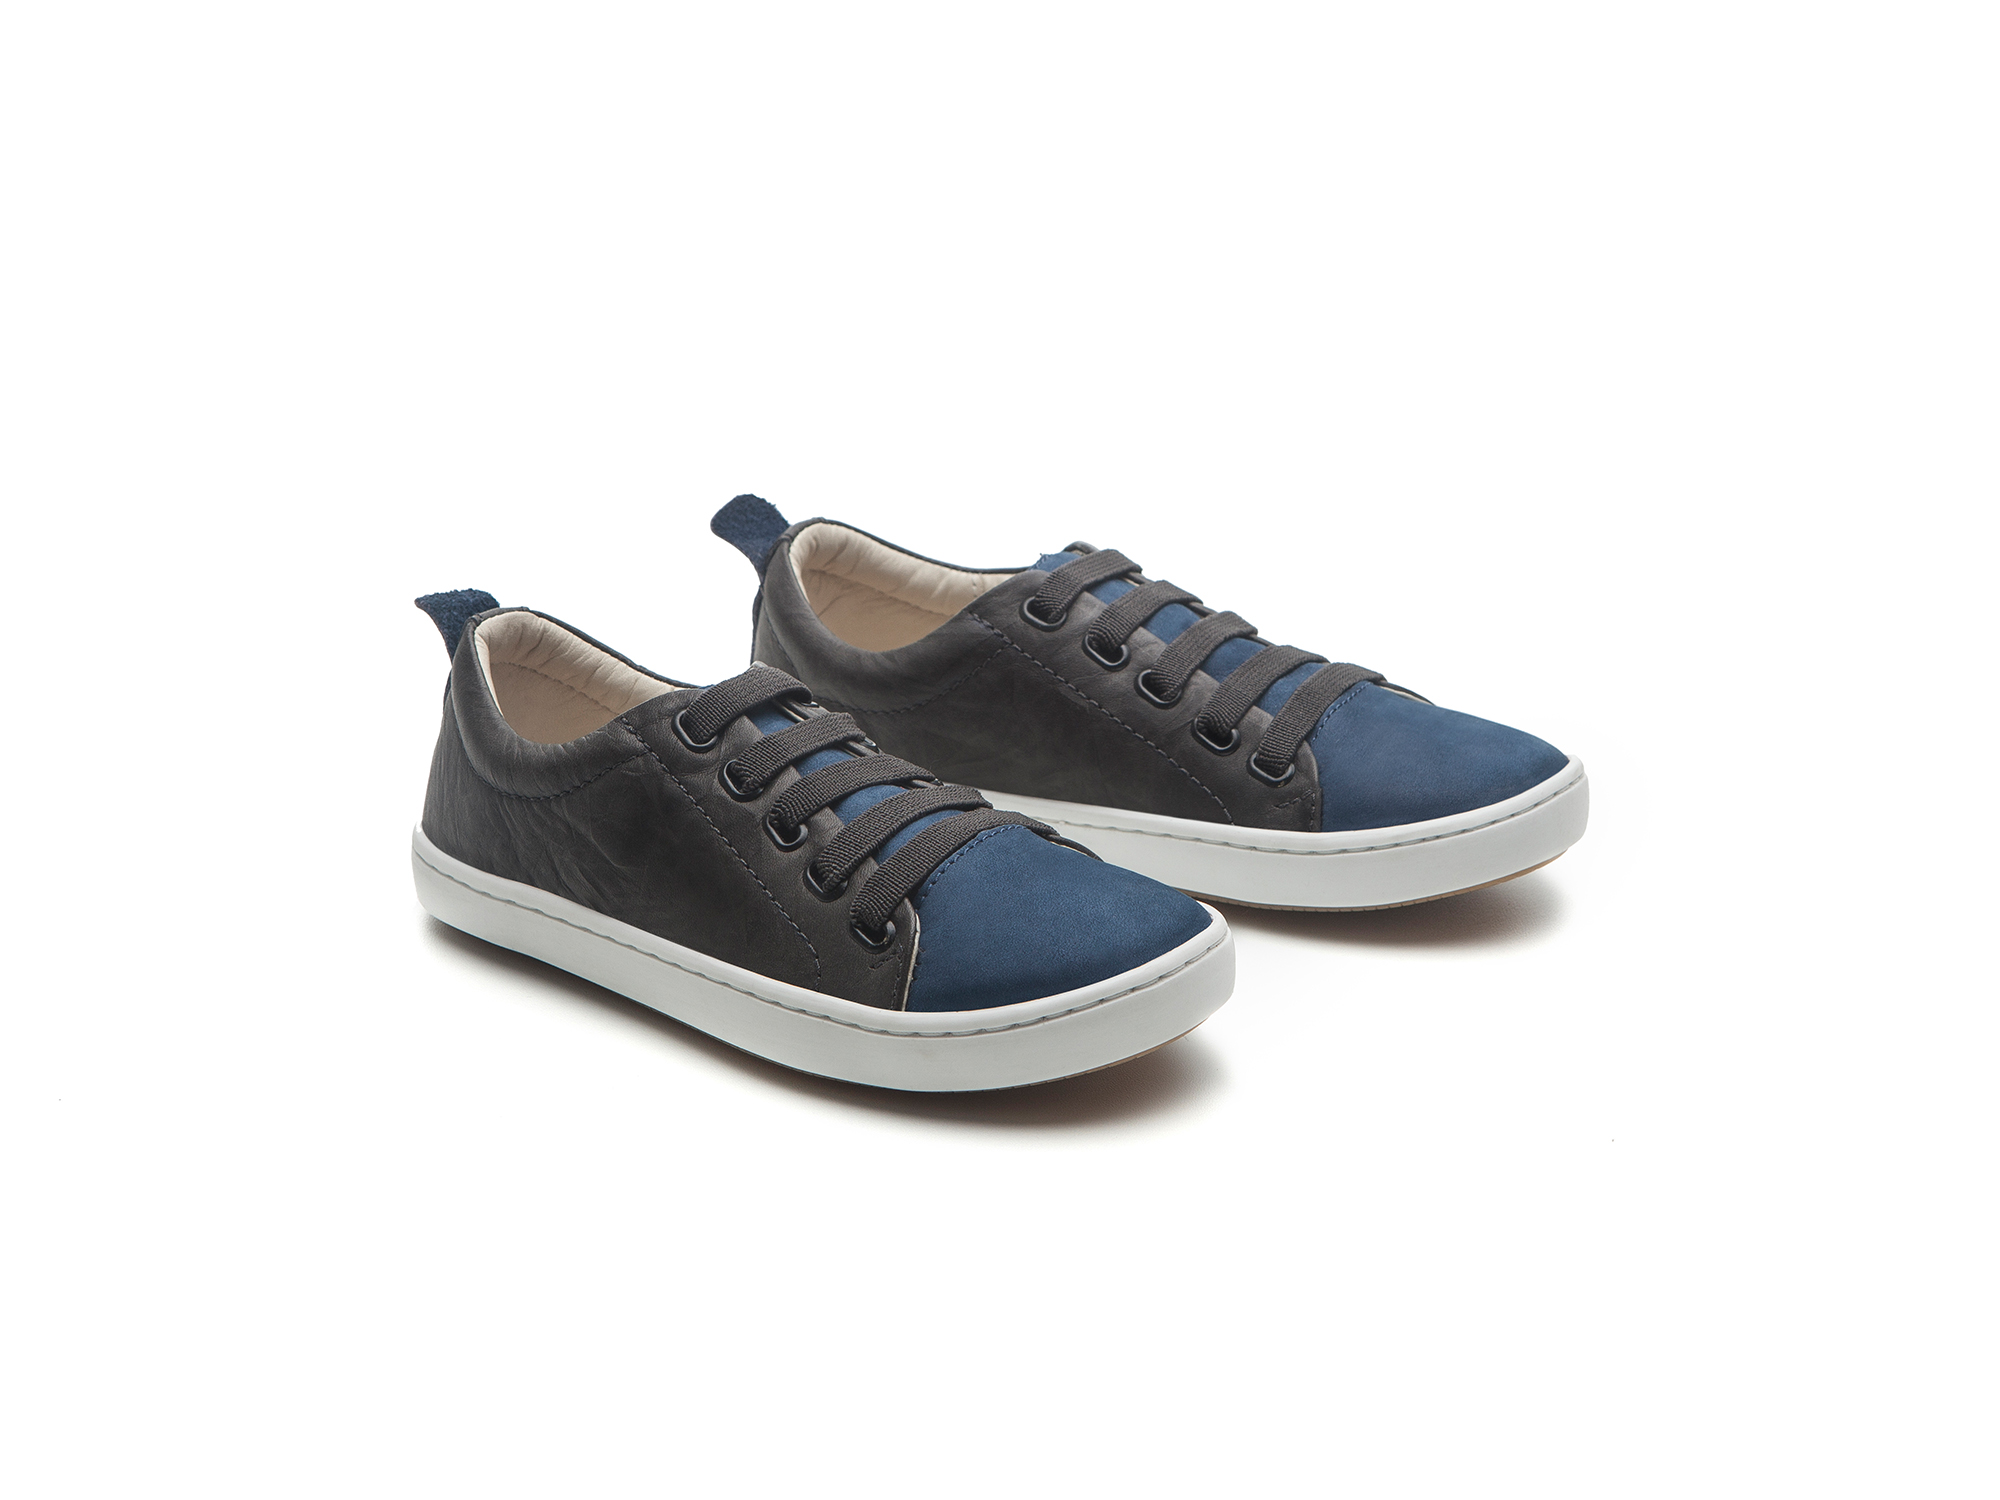 Tênis Ladder Black Crush/ Indigo Blue Nob. Junior 4 à 8 anos - 0